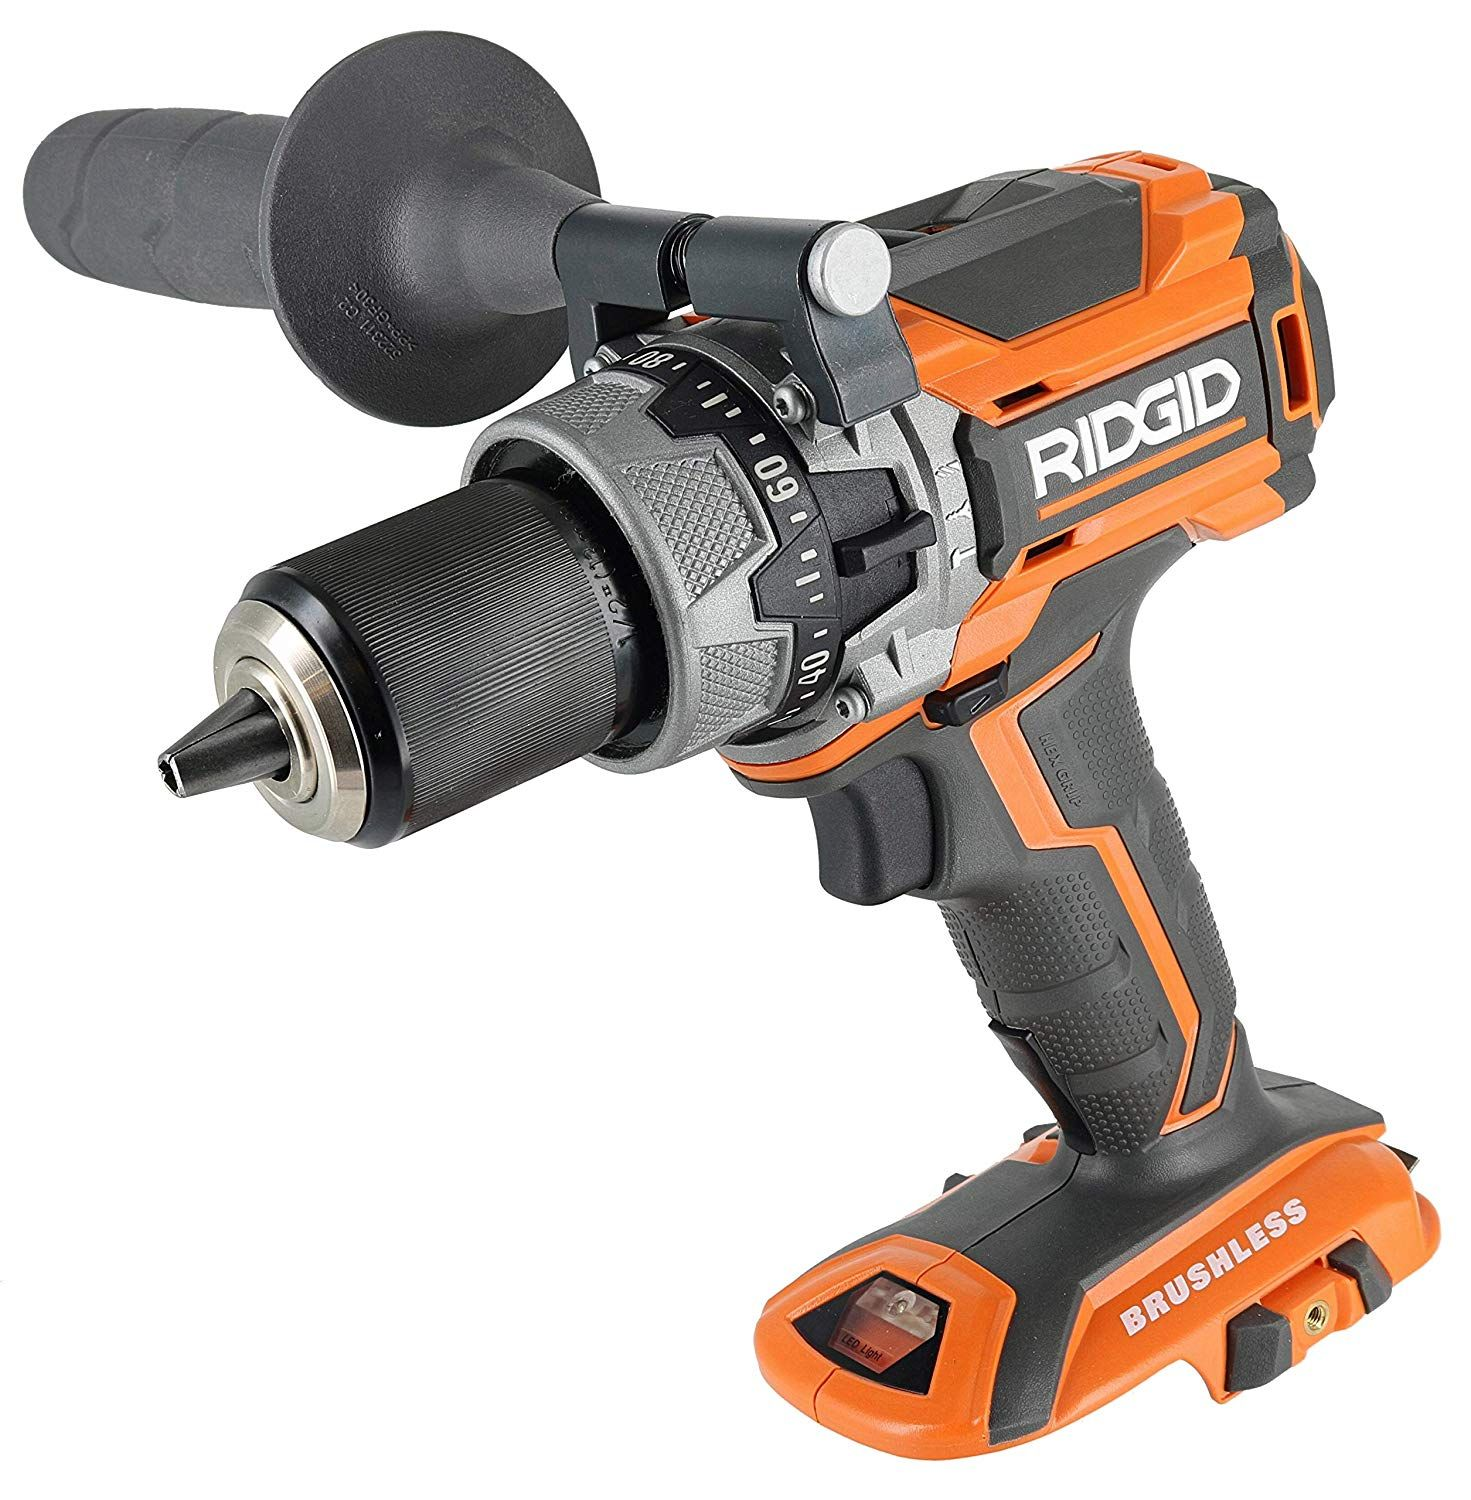 Ridgid R86116 18v Lithium Ion Cordless Brushless Compact Hammer Drill W 100 Setting Micro Clutch And Led Lighting Battery Not Included Power Tool Only Hammer Drill Drill Power Tools